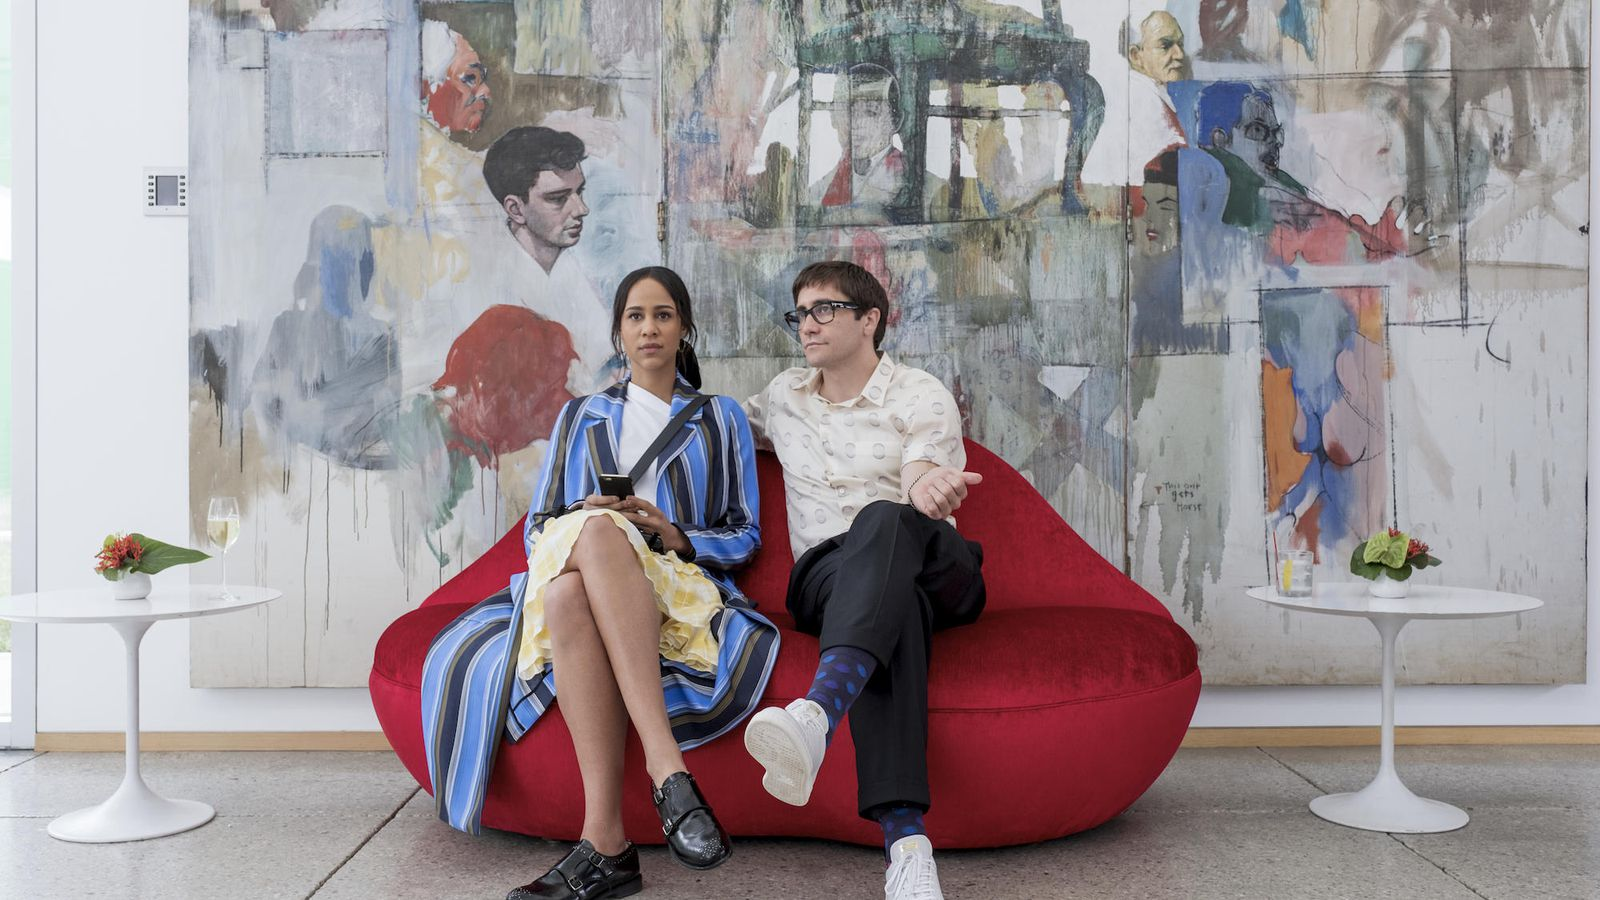 Velvet Buzzsaw Netflix art snob horror comedy isnt a pretty 1600x900